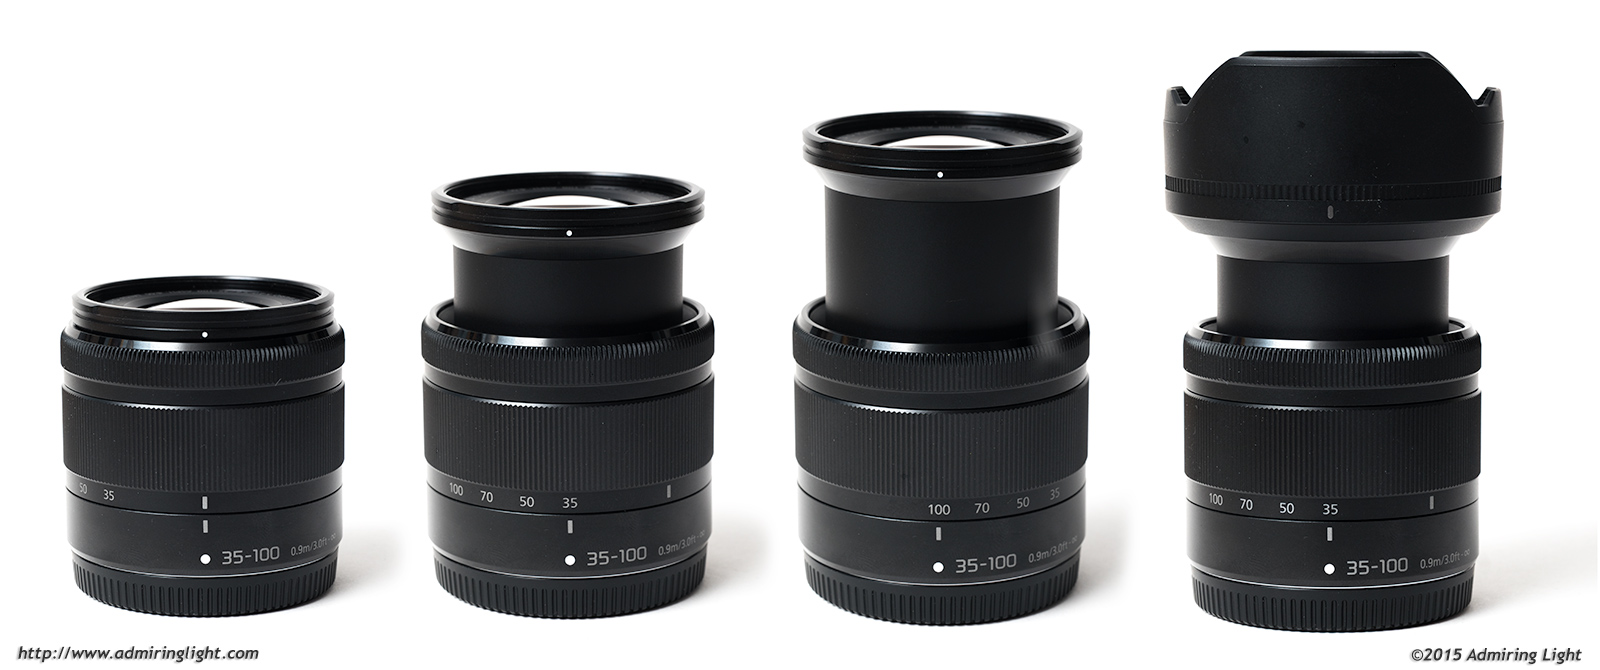 The 35-100mm is a collapsible design that extends during use